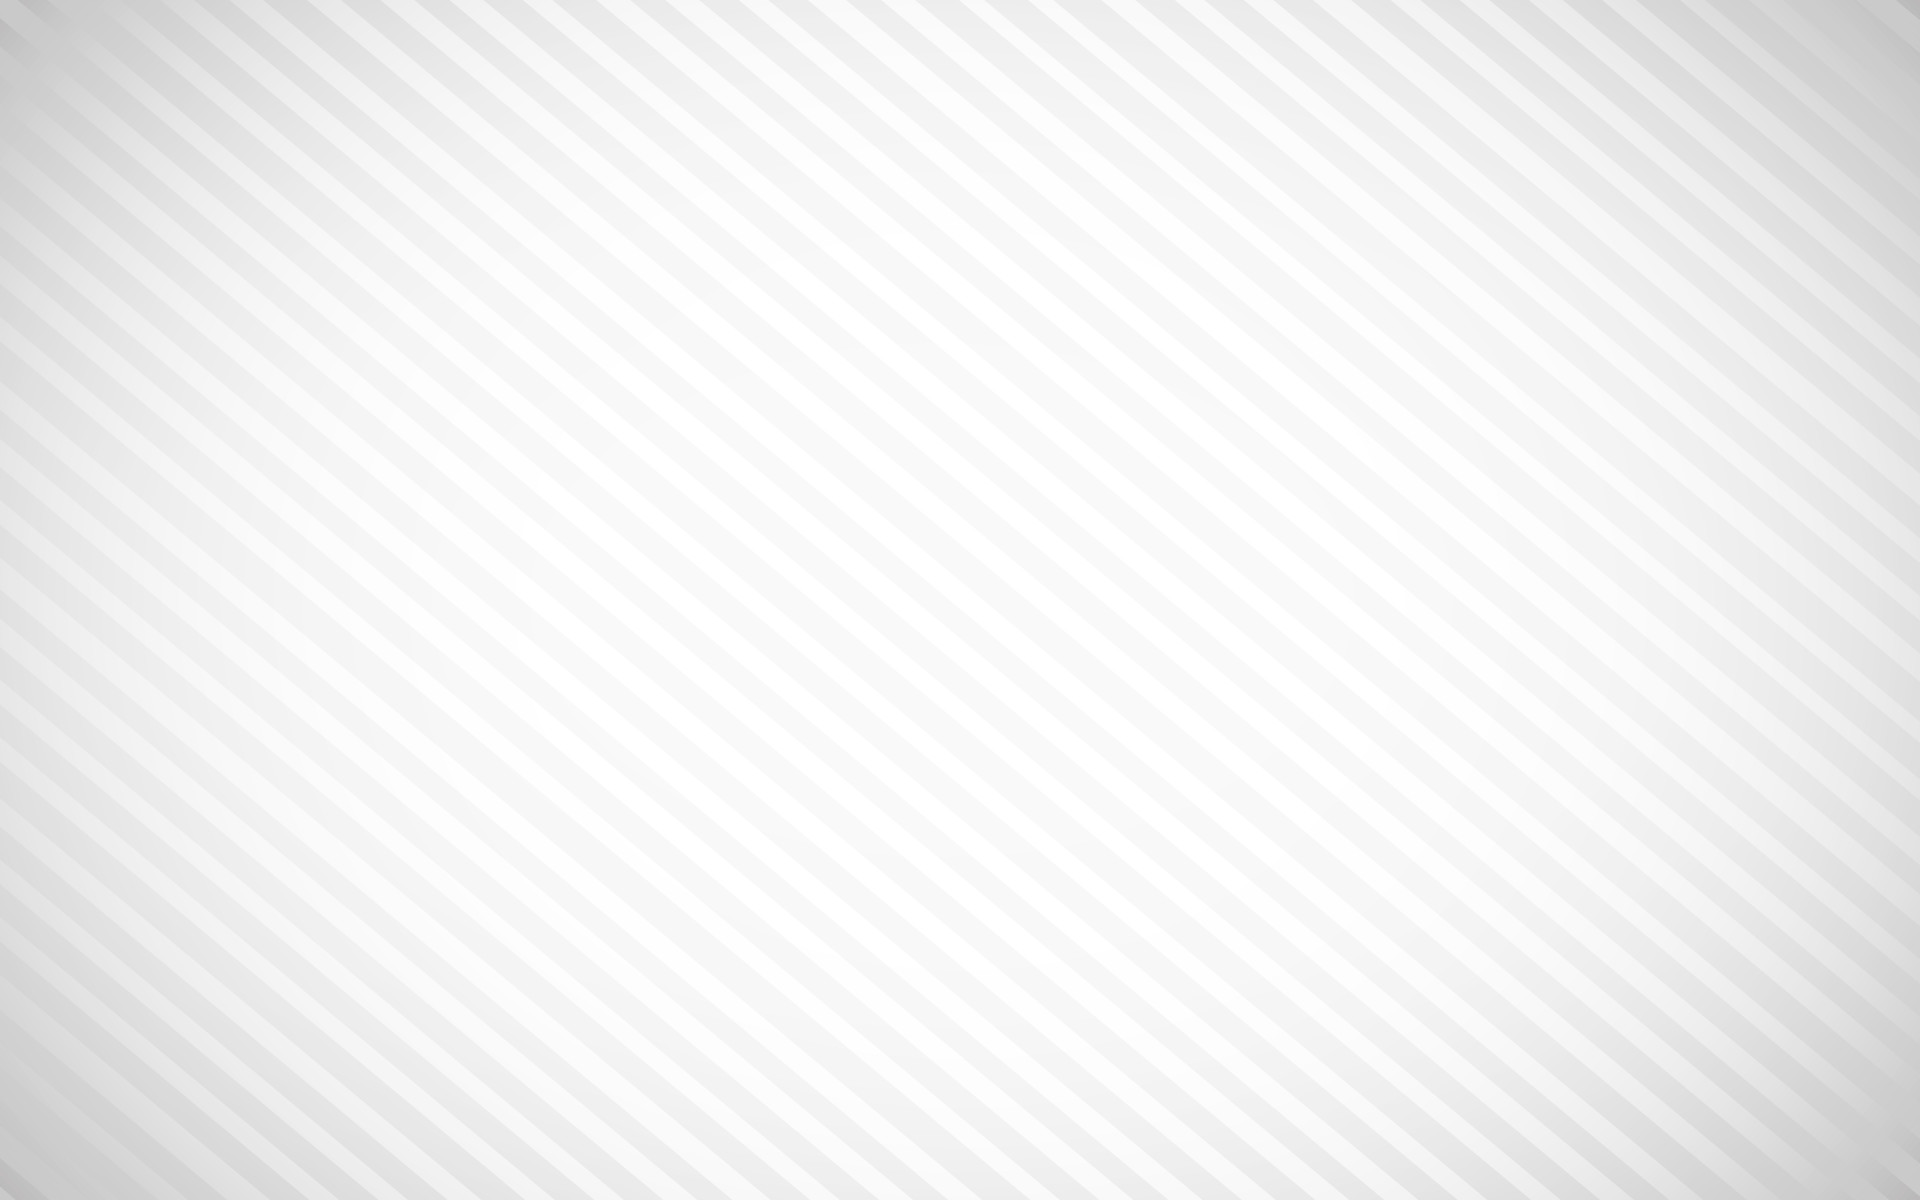 Hd White Wallpapers